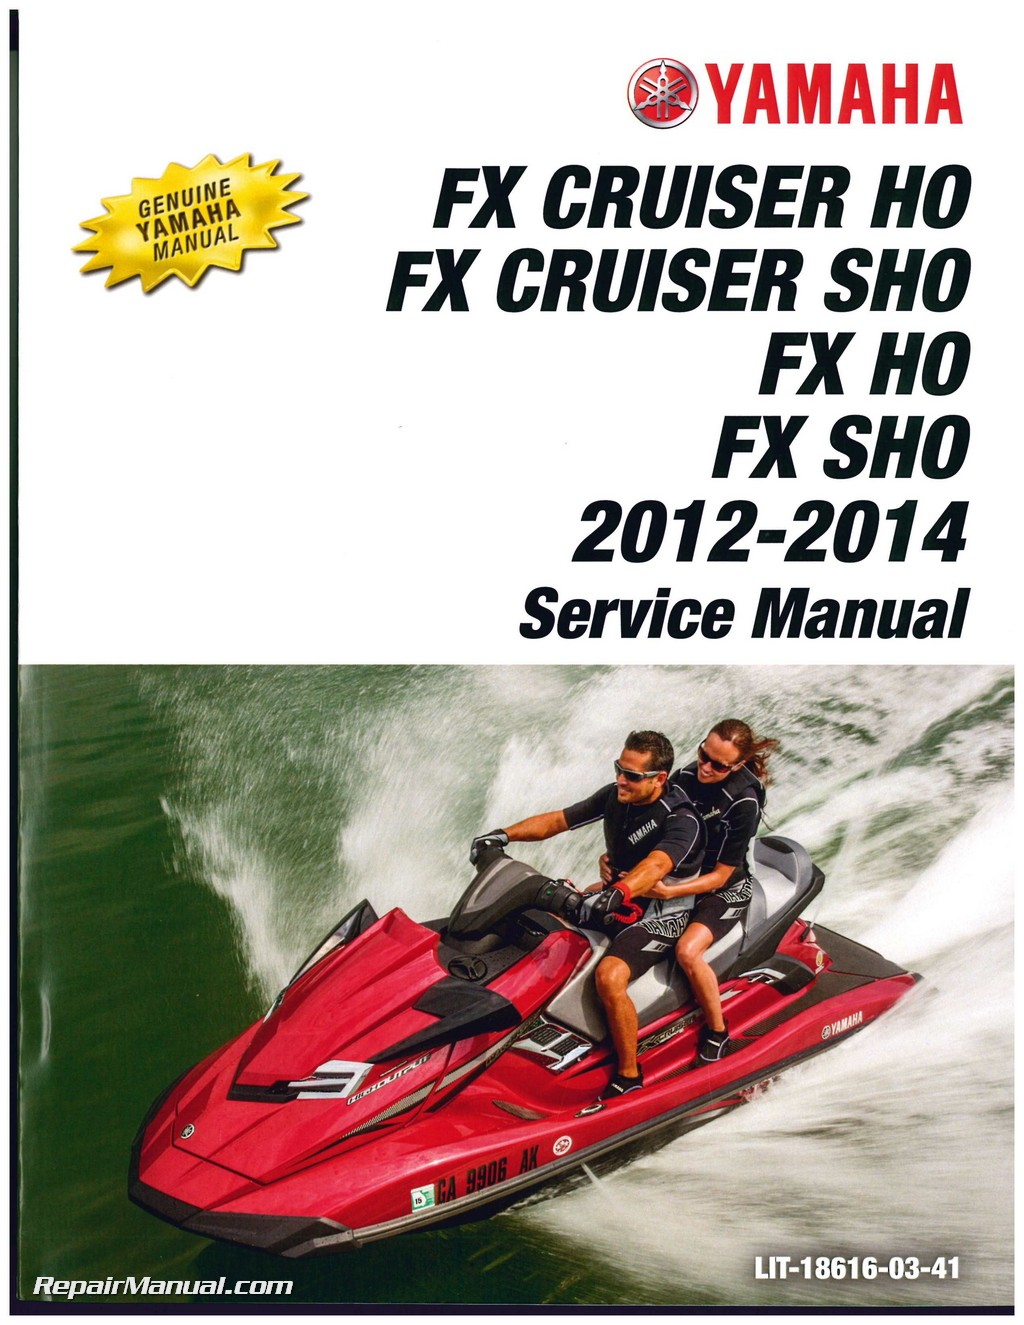 2012-2014 Yamaha FX Cruiser HO/SHO FX HO/SHO Personal Watercraft Service  Manual